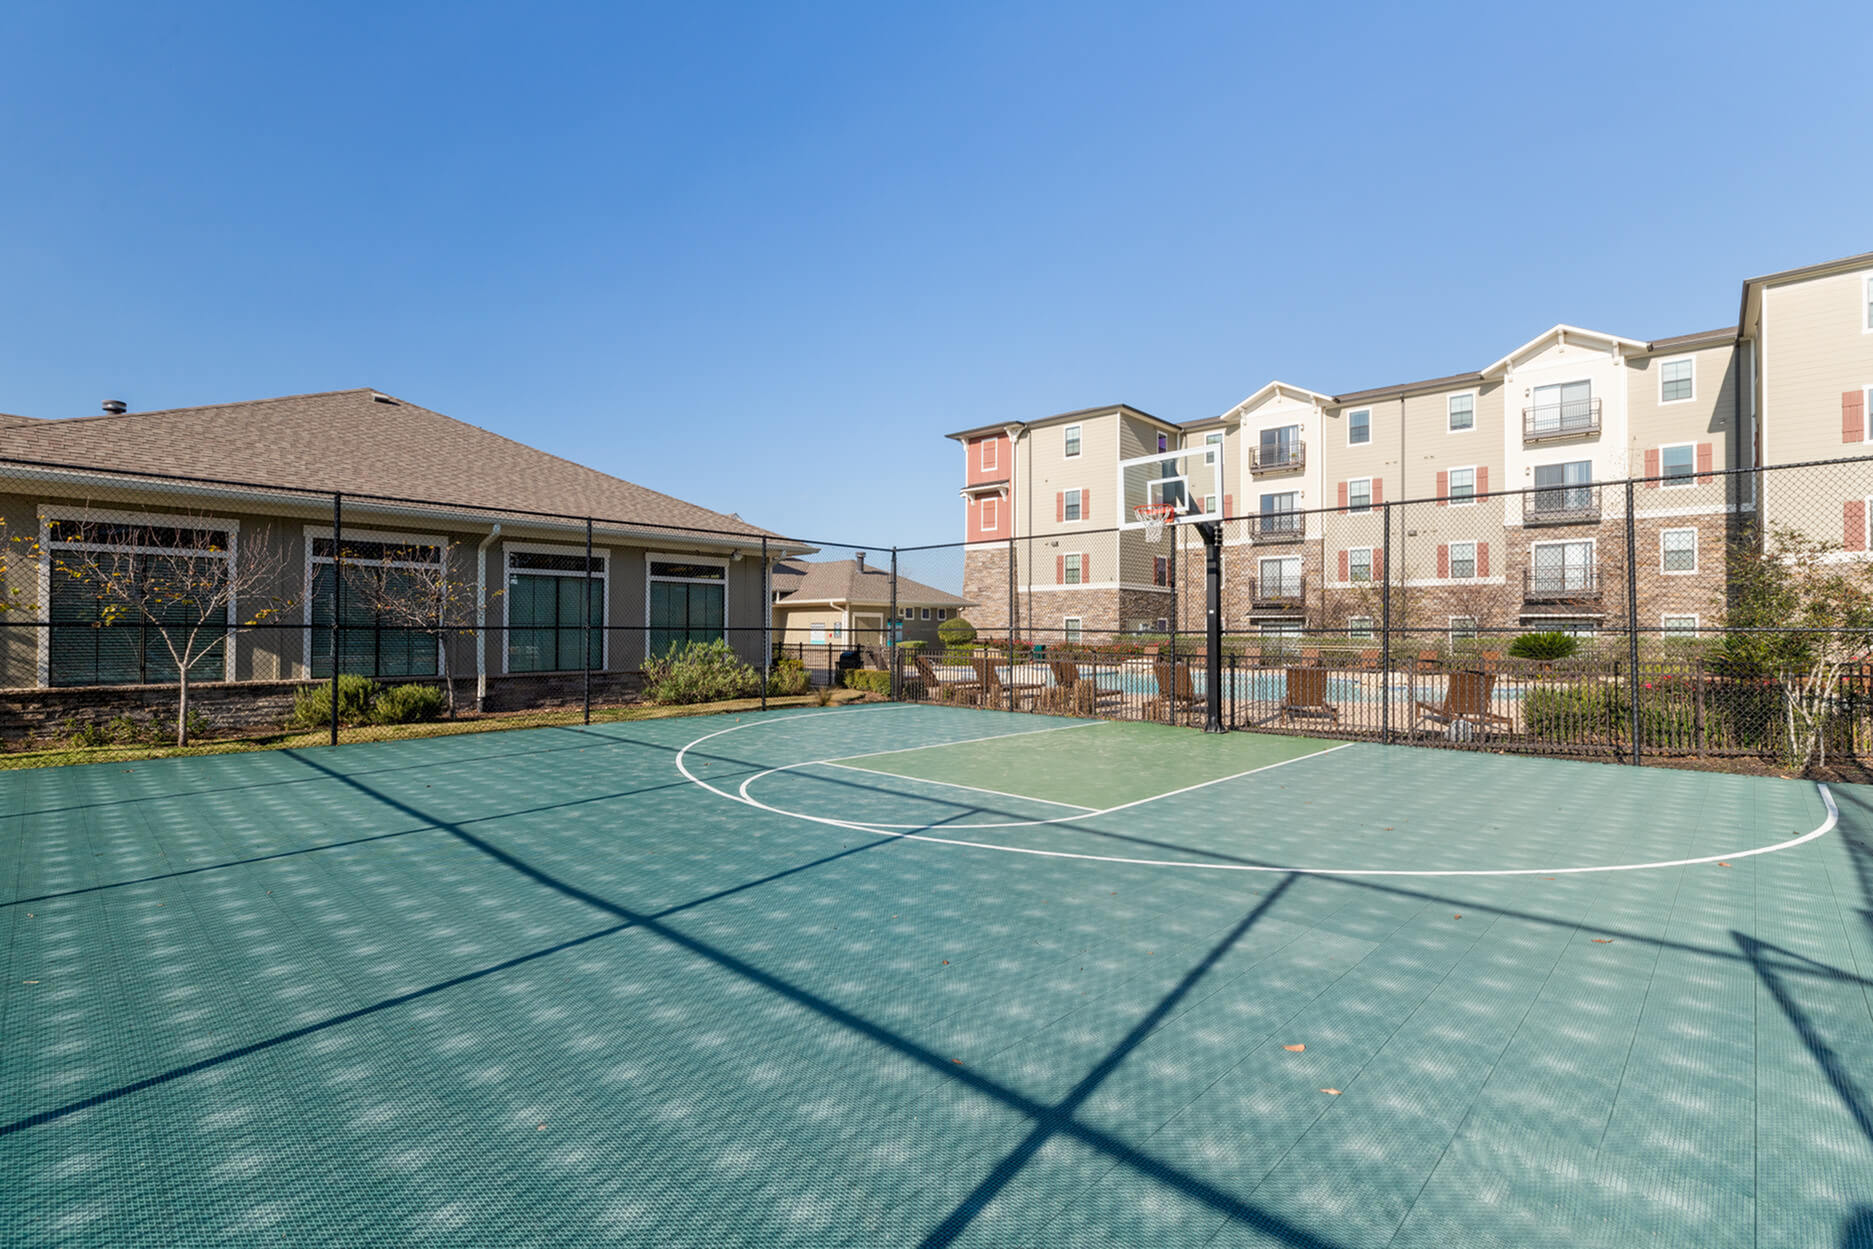 Community Basketball Court | Apartment Homes for rent in San Marcos, TX | Arba